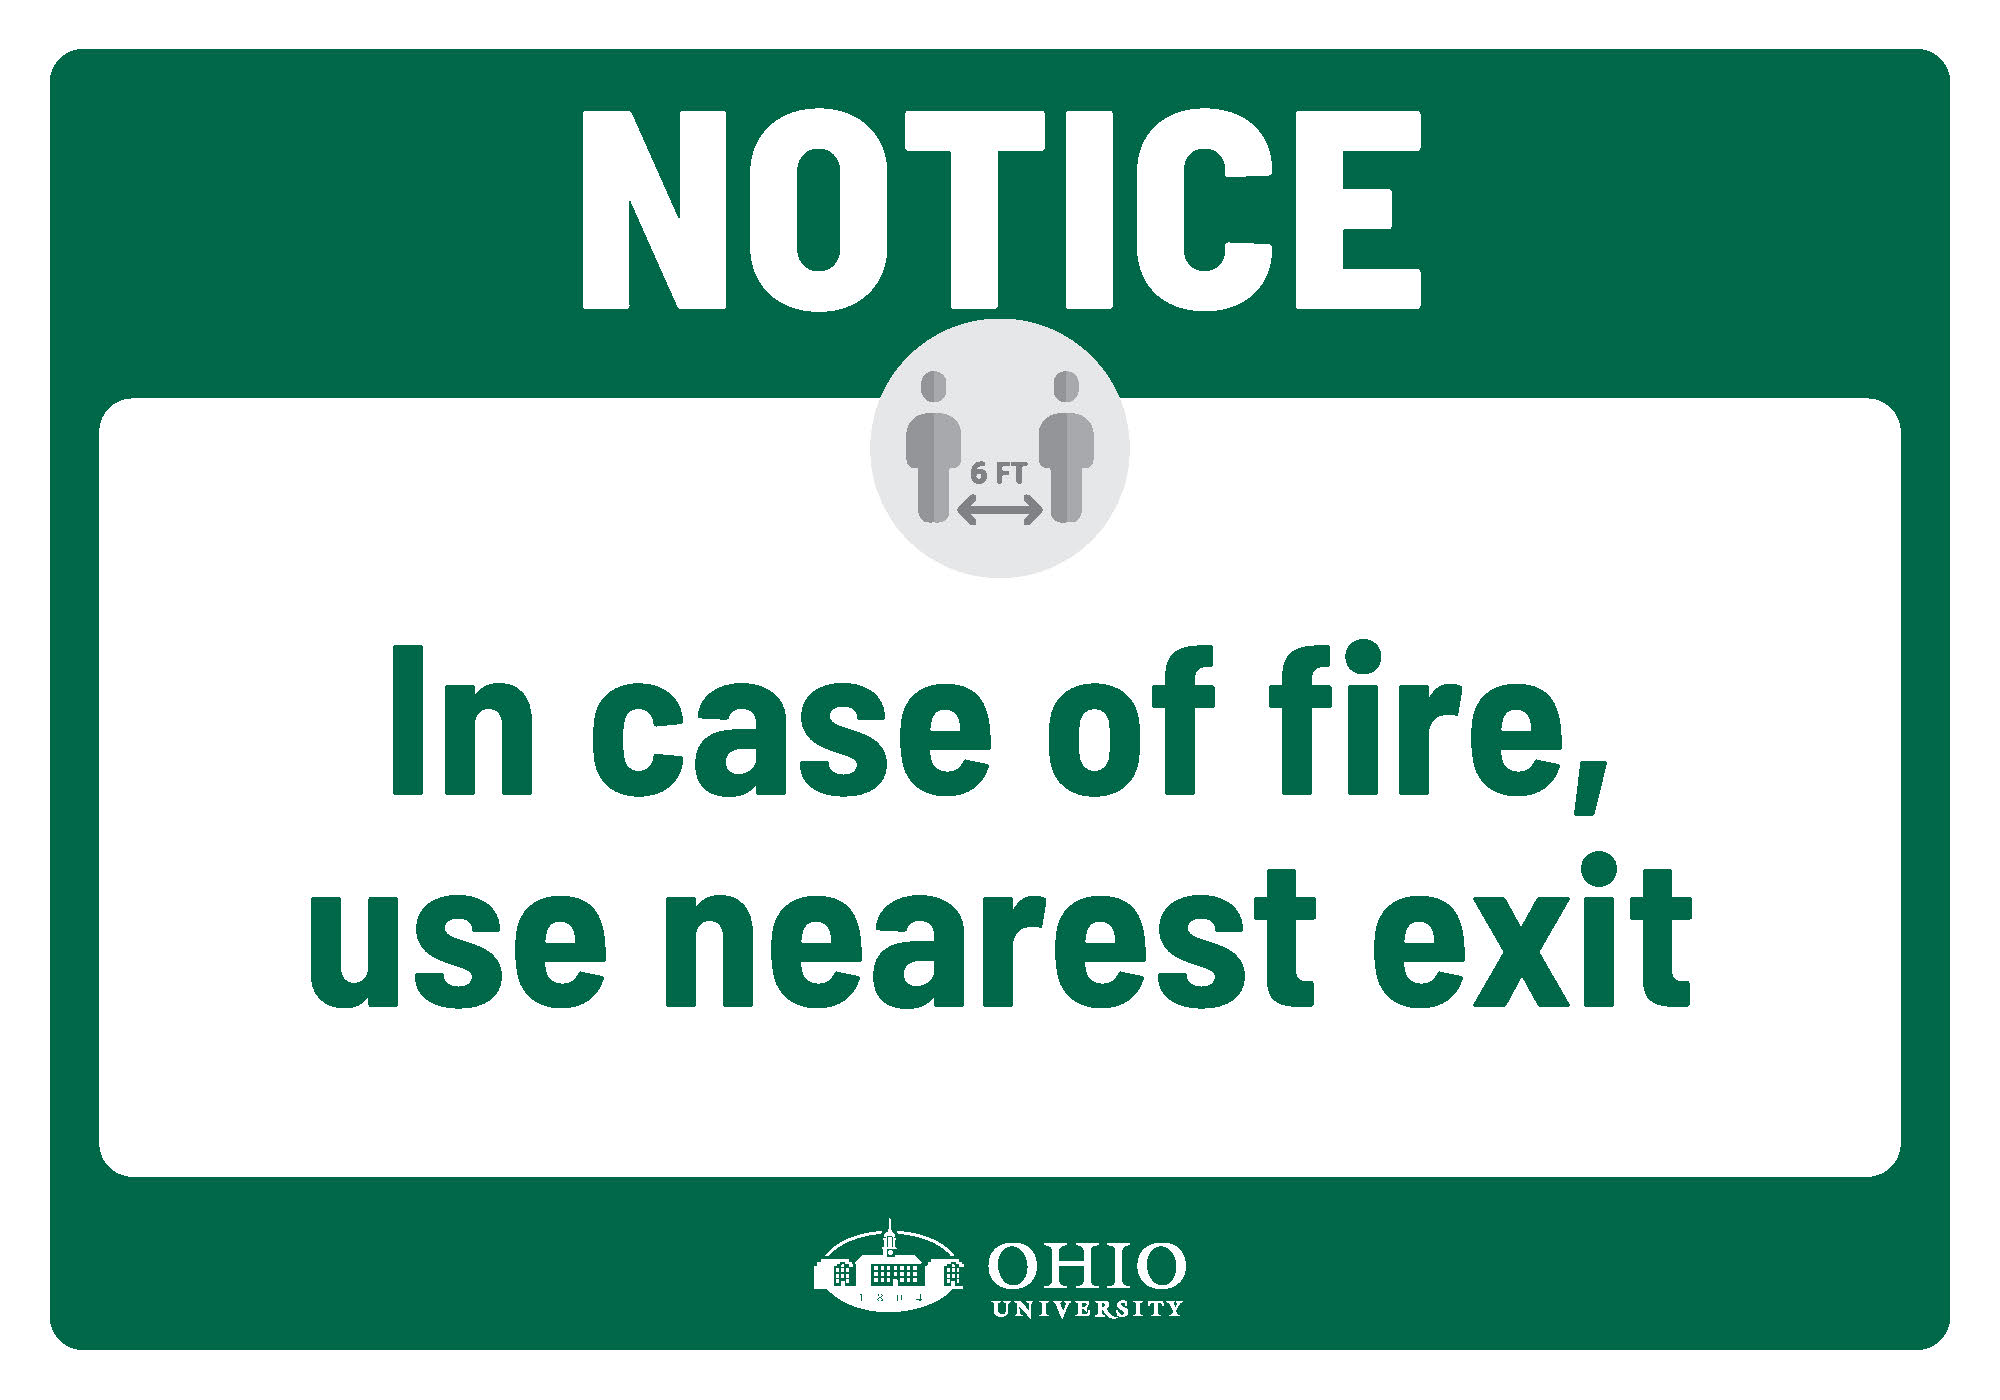 Sign that says: Notice. In case of fire, use nearest exit.